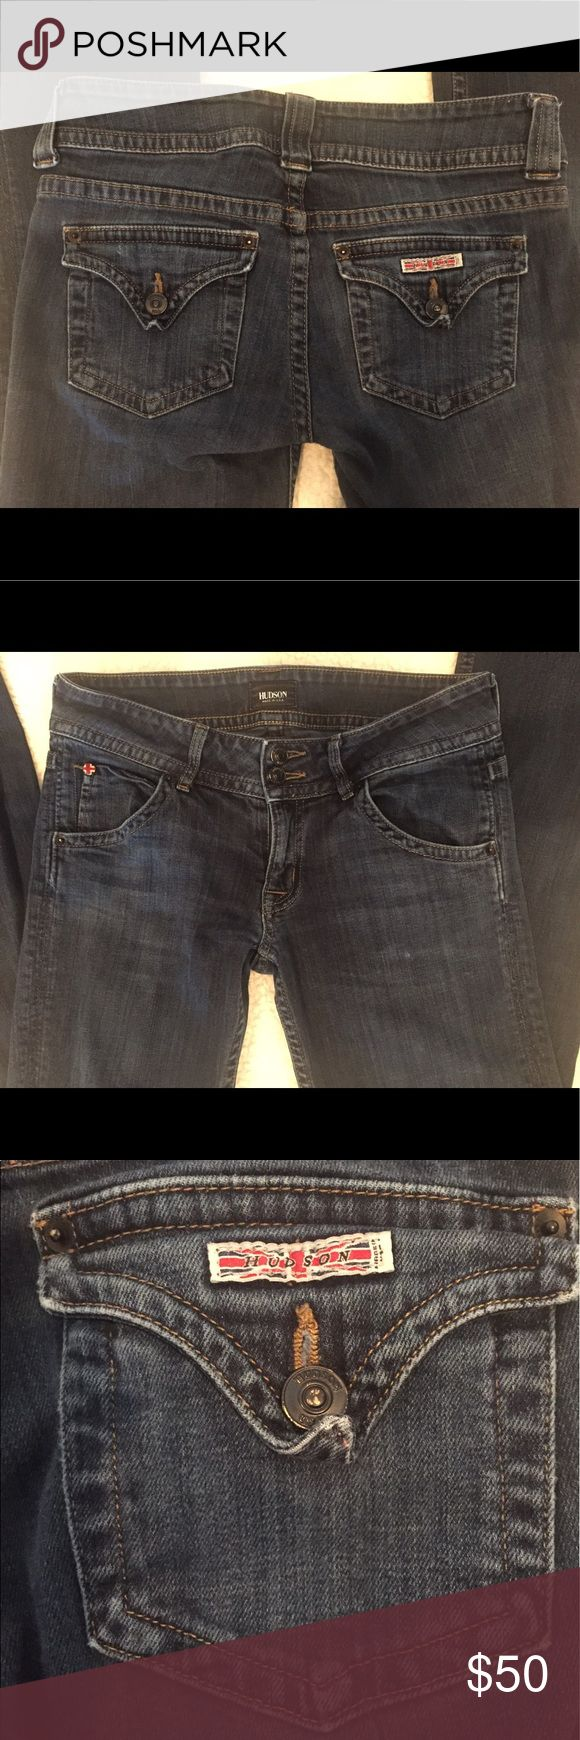 💥SUNDAY SALE💥HUDSON jeans❤️ Women's HUDSON jeans in dark wash. These are an amazing pair of jeans! Great dark color with slight distressed look and they're really comfy!! Hudson Jeans Jeans